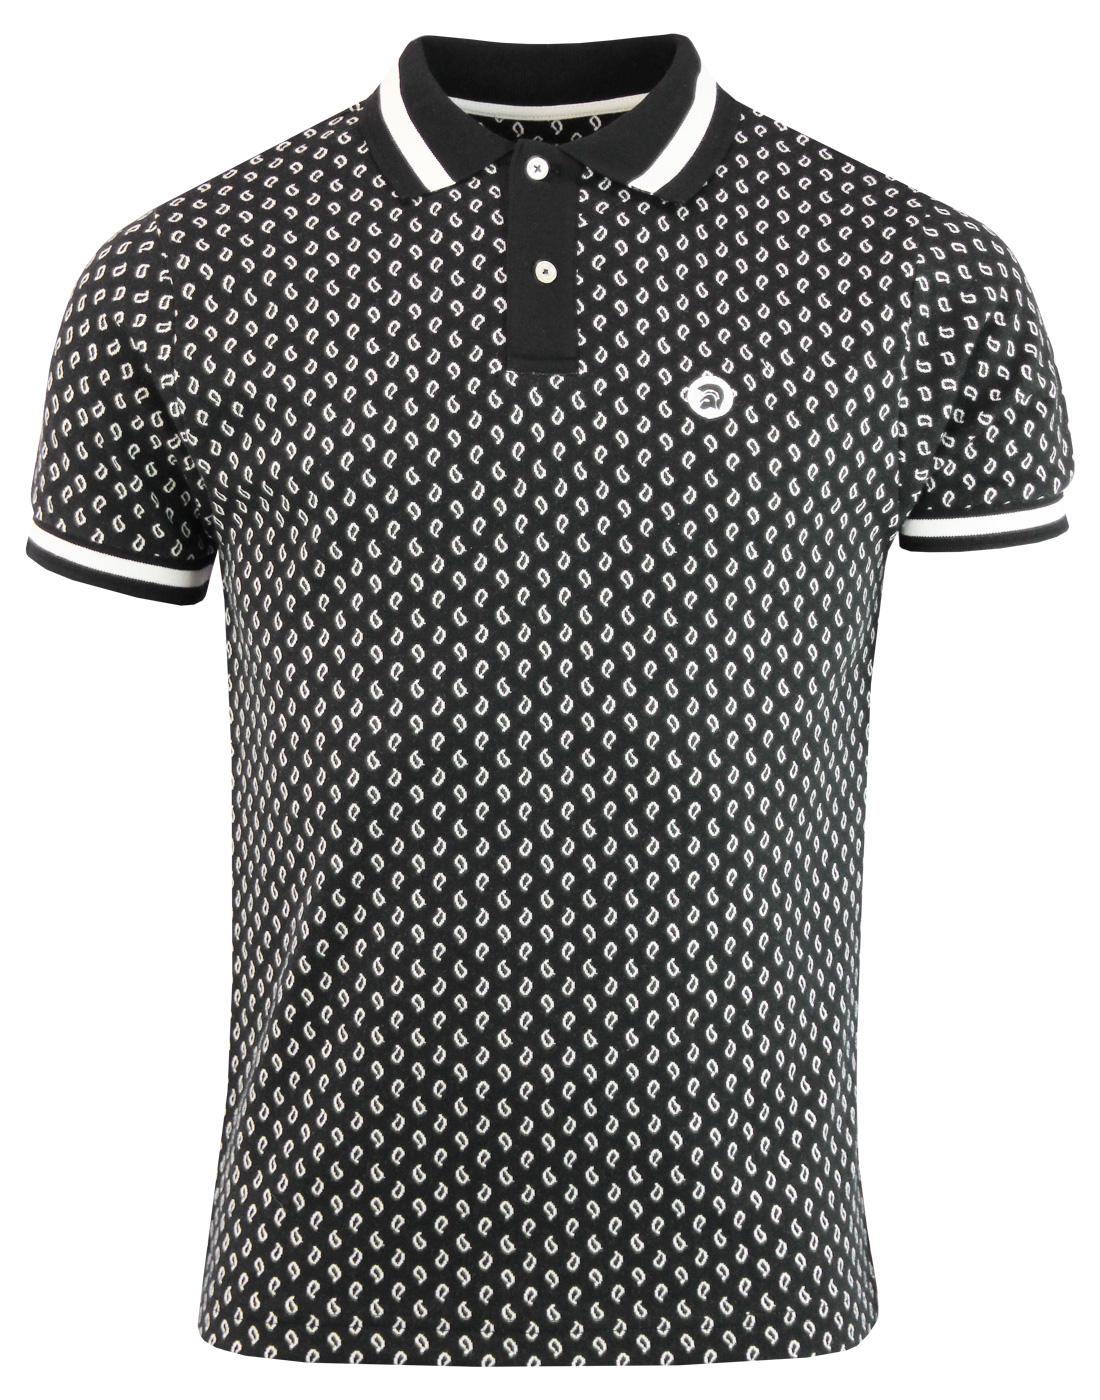 TROJAN RECORDS Retro Mod Jacquard Paisley Polo Top